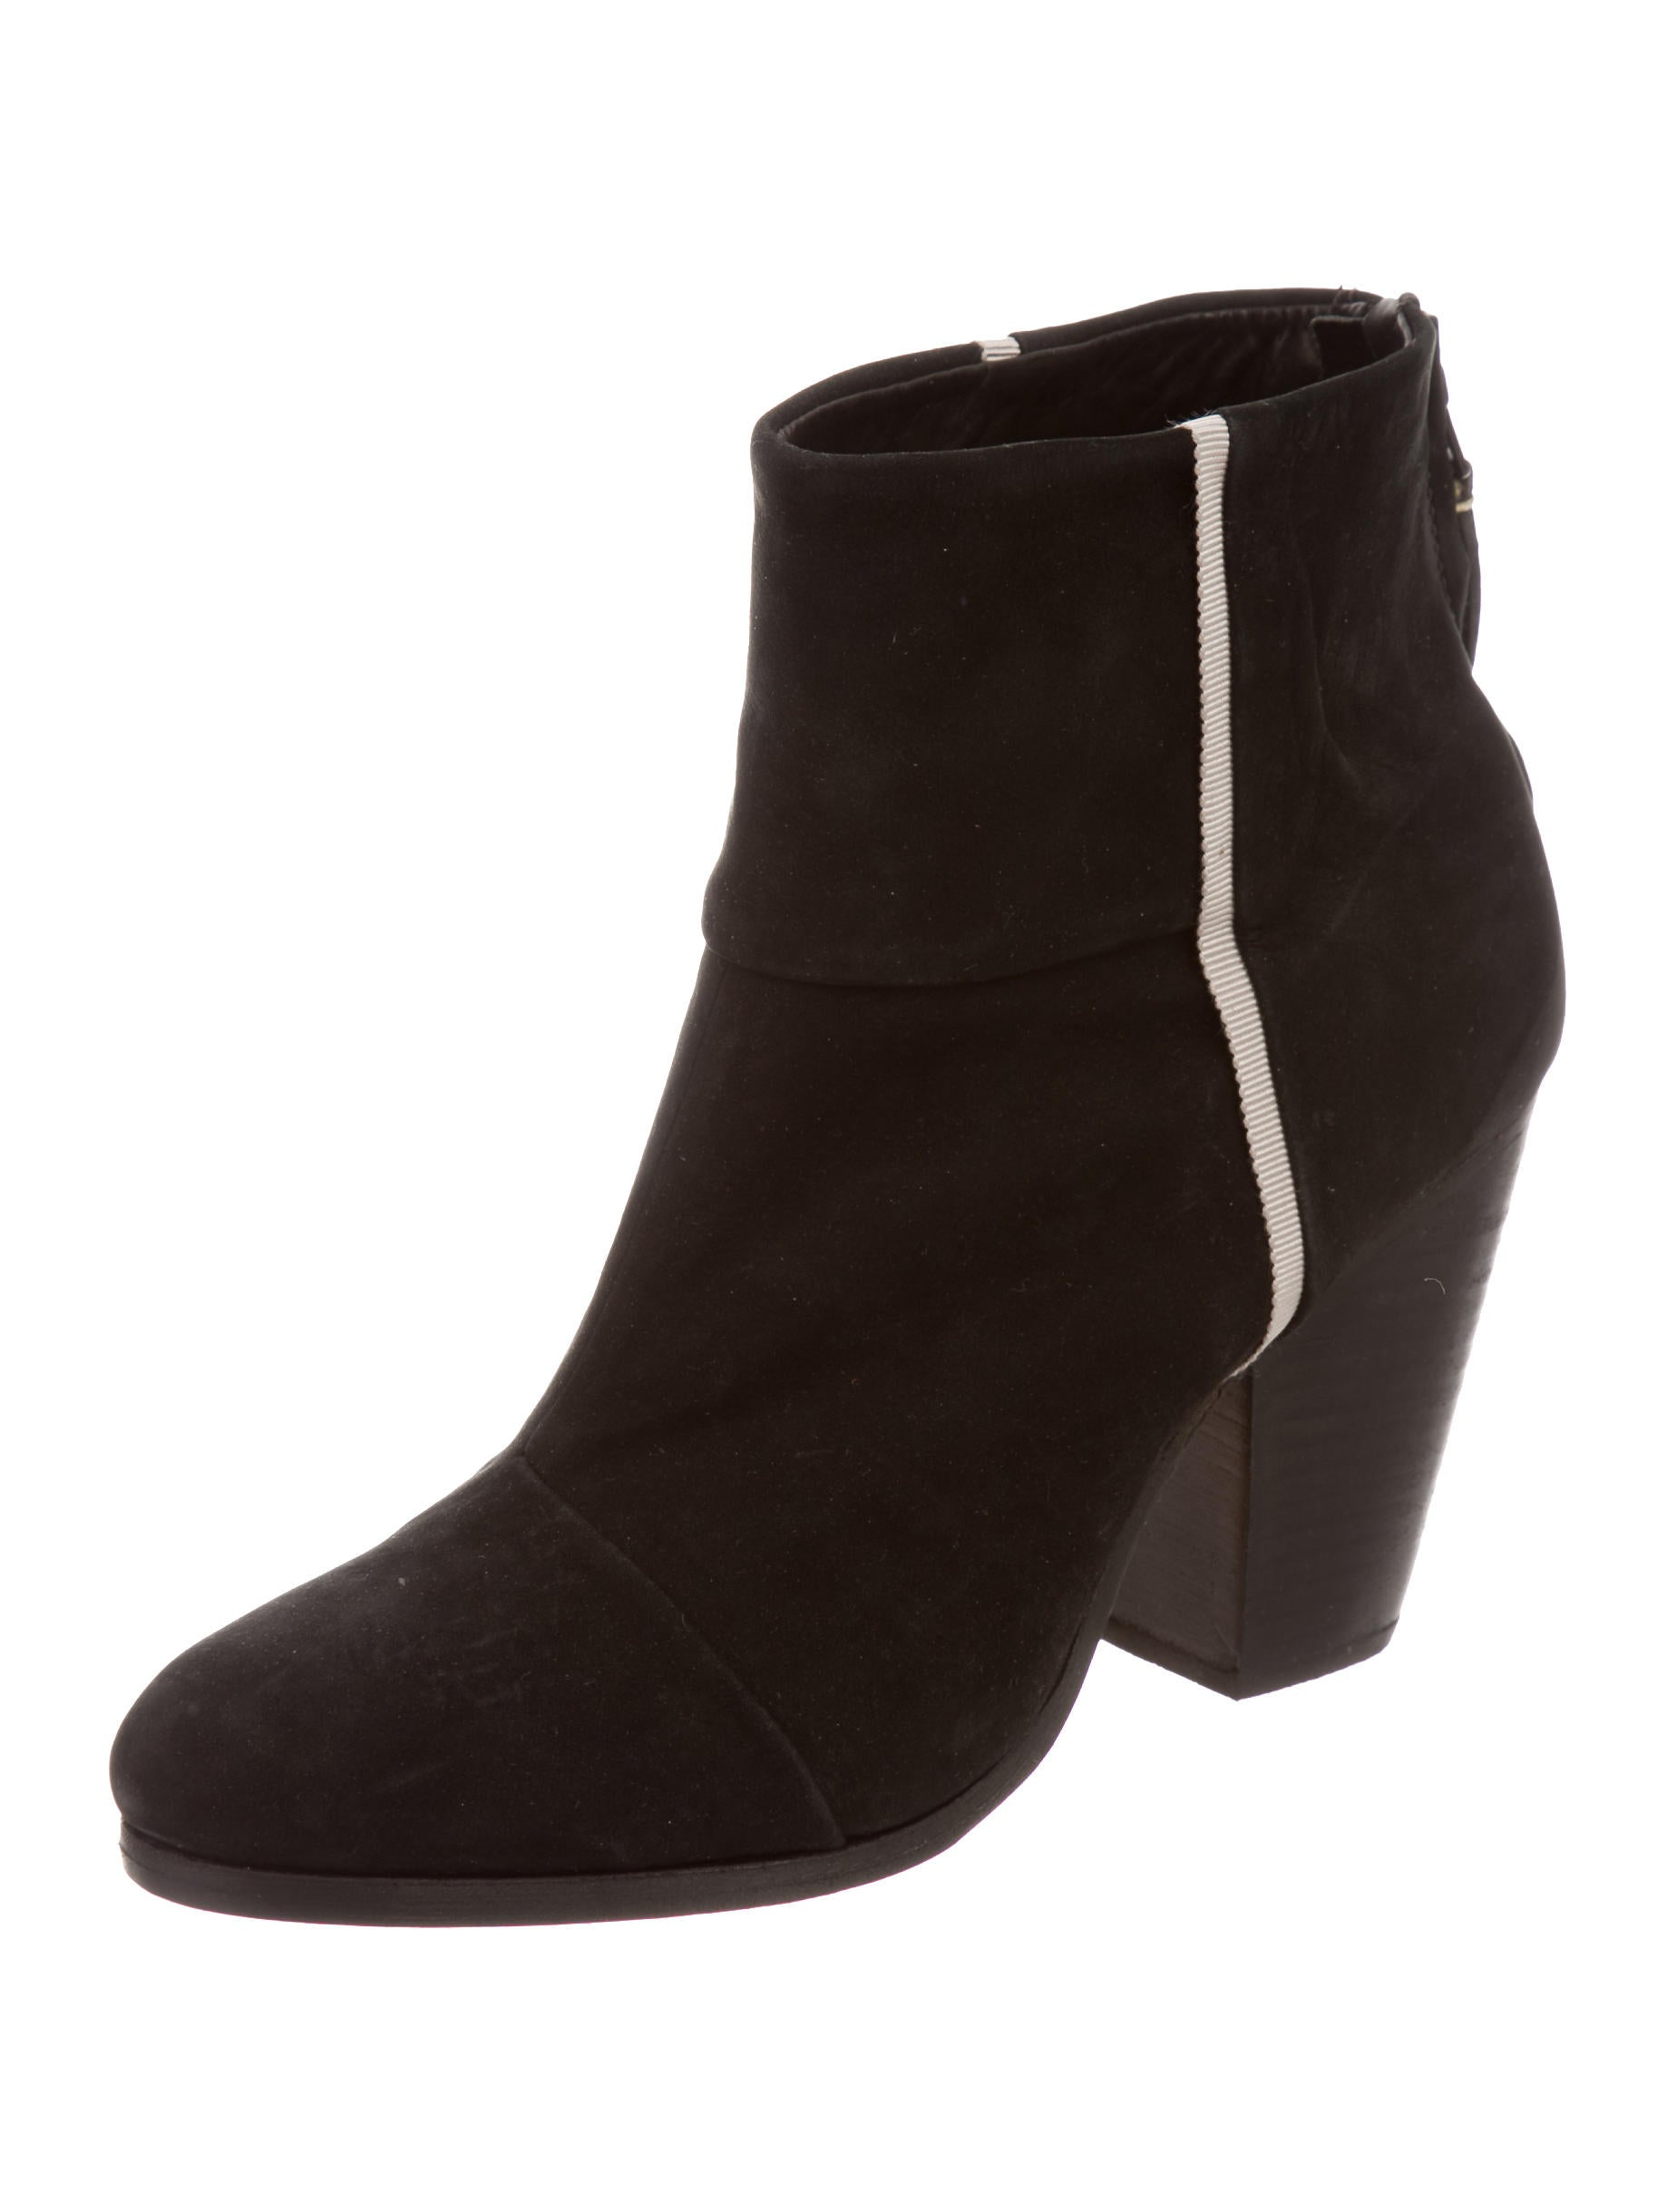 rag bone suede newbury ankle boots shoes wragb54369